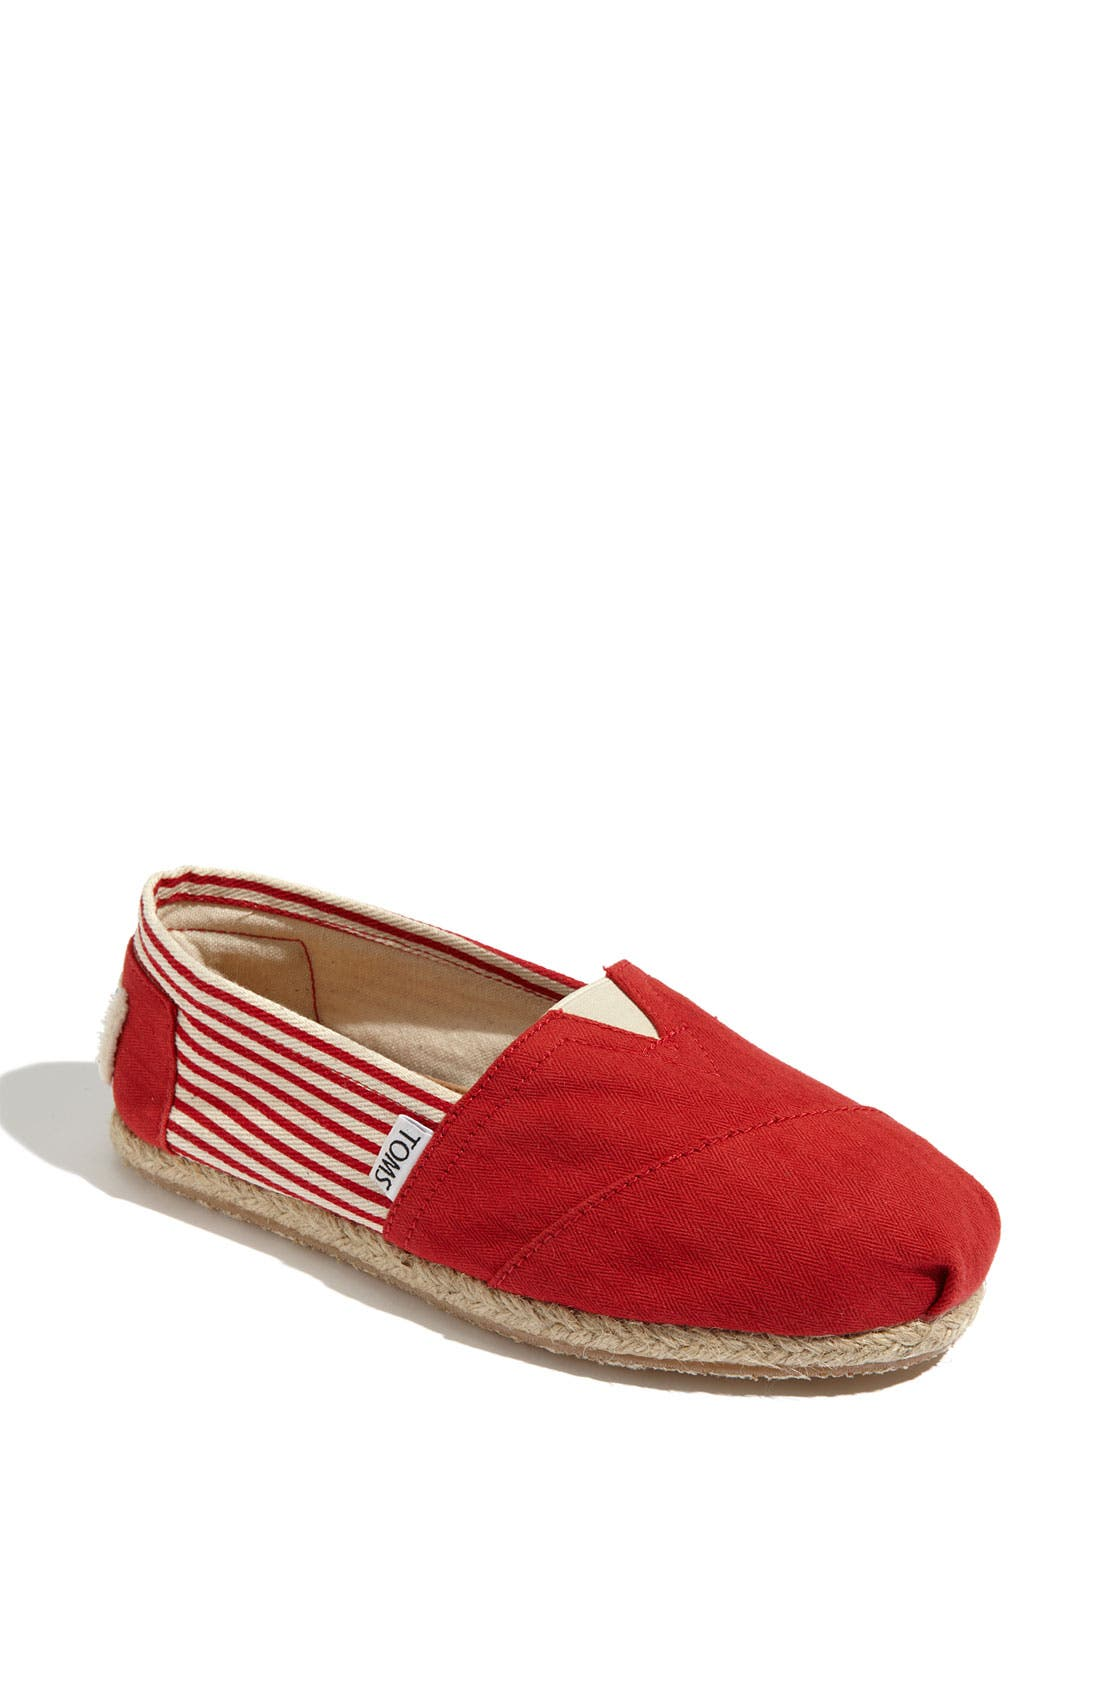 Main Image - TOMS 'Classic - University' Slip-On (Women)